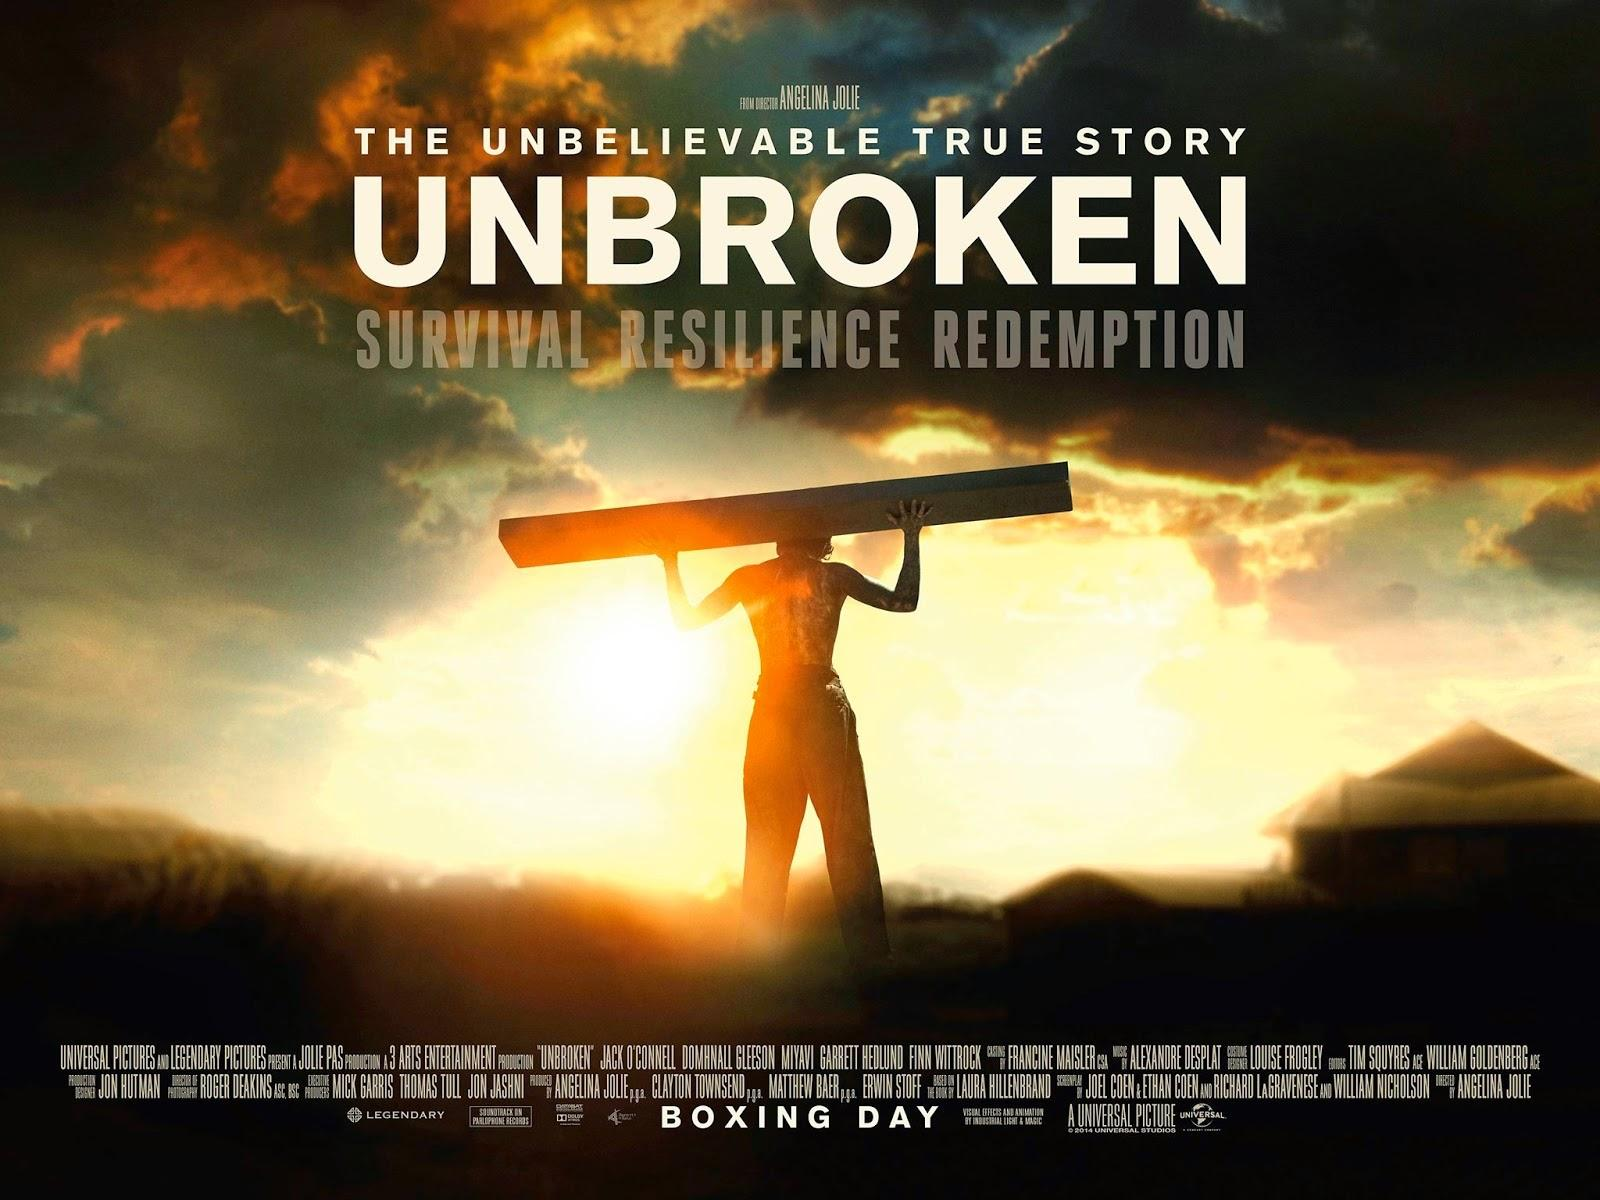 Directed by Angelina Jolie, Unbroken tells the tale of Olympic Runner ...